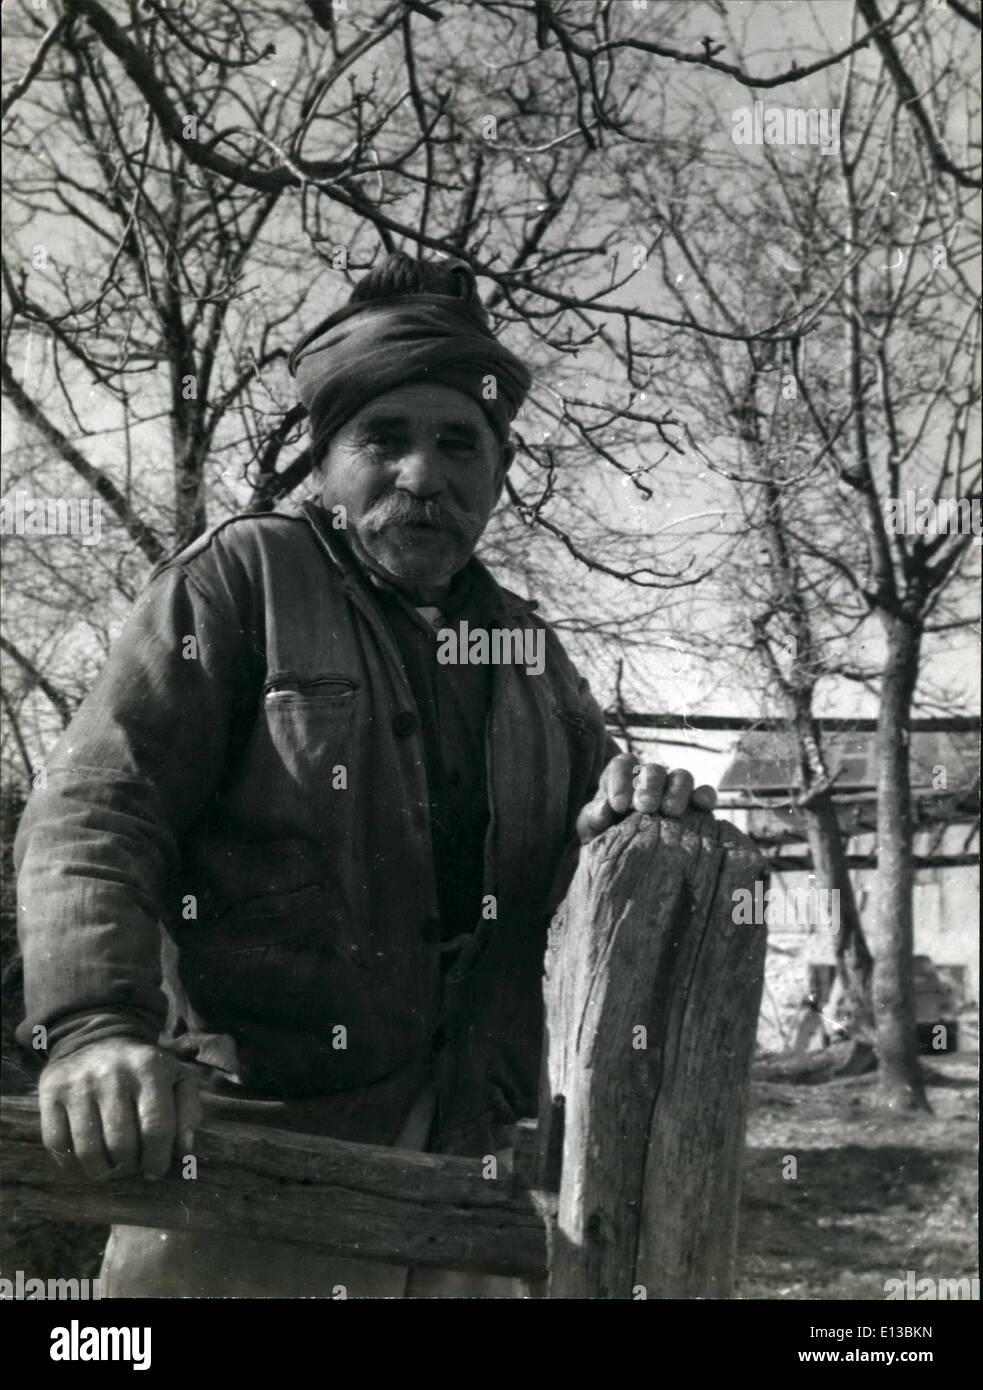 Feb. 29, 2012 - Polonezkoy, ''Poland-In-Turkey'': Septuagenarian Pole Marian Dohoda, descendent of 19th century Polish freedom fighters who founded ''Poland-in-Turkey'' near Istanbul, stands under the walnut trees of his ancestral acres at Polonezkoy. He remembers when the young men of his village rode out to hunt bears in the forests around the village. Today men -and women too- still hunt savage wild boar roaming the heathland that surrounds Polonezkoy's fertile farms and orchards. - Stock Image